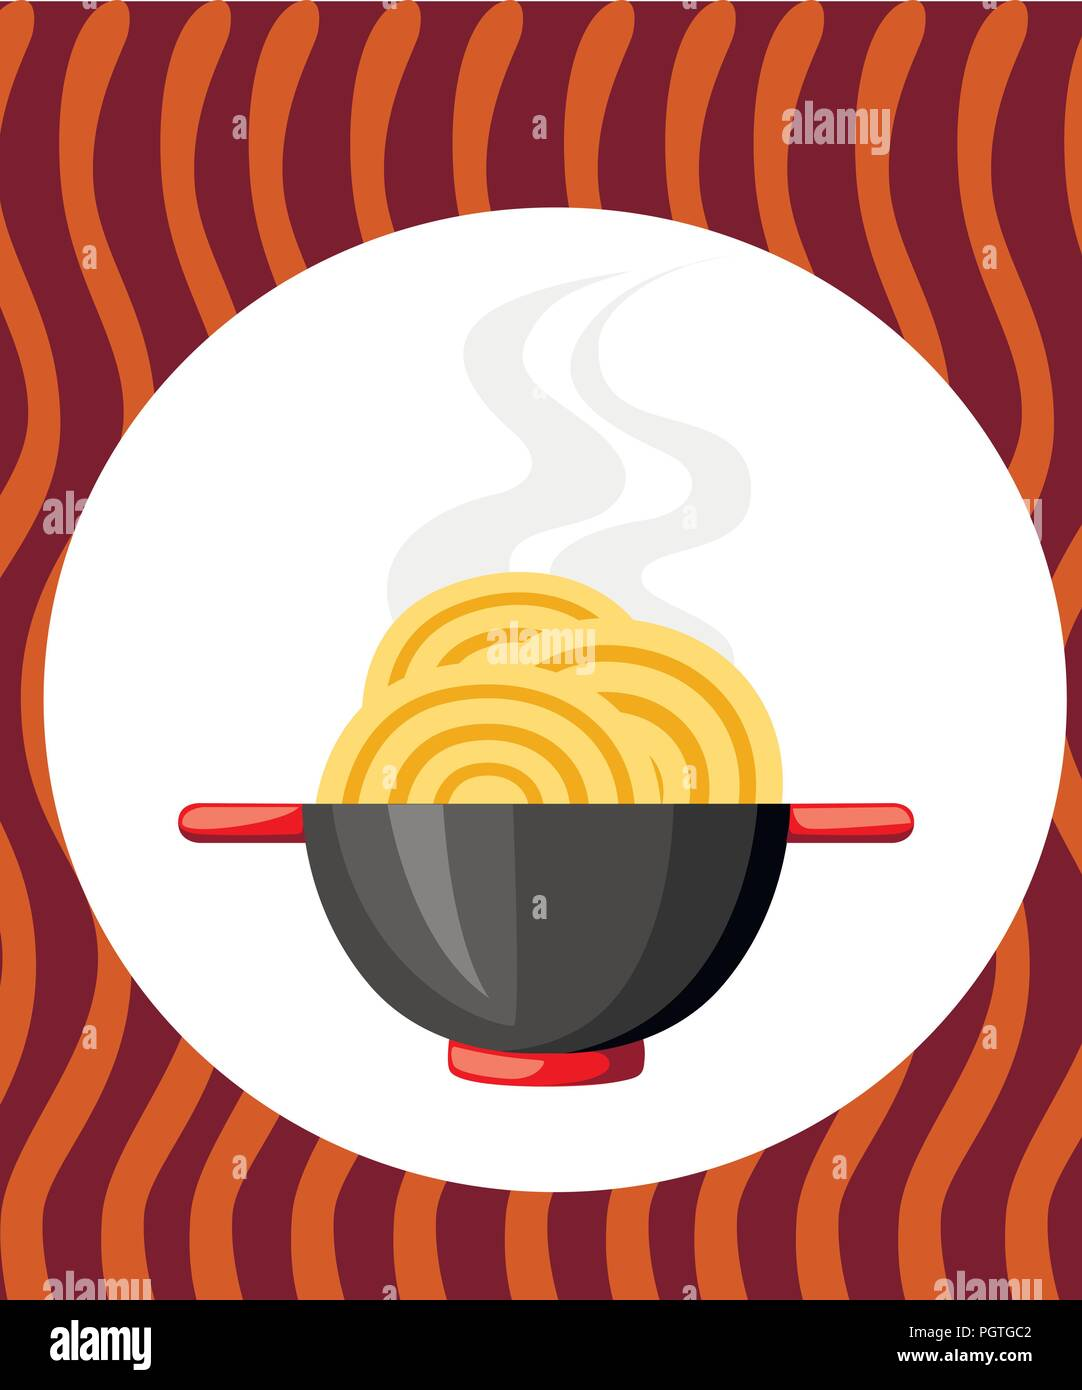 Black bowl with noodles. Red handles. Flat vector illustration on textured background. Colorful icon for fast food restaurants. - Stock Vector